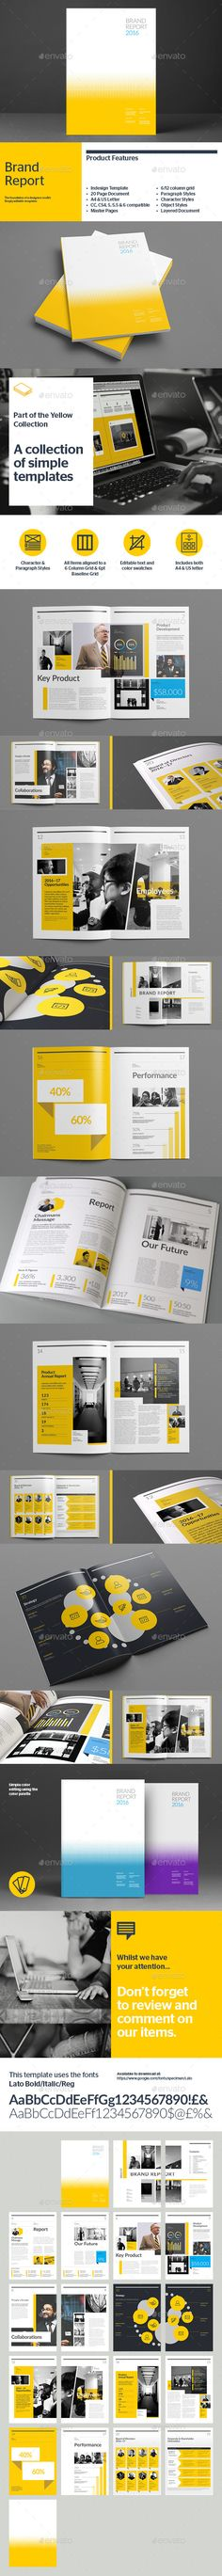 Annual Report     InDesign Template  creative  review  modern     Annual Report     InDesign Template  creative  review  modern     Download         https   graphicriver net item annual report      Annual Report Template  Design